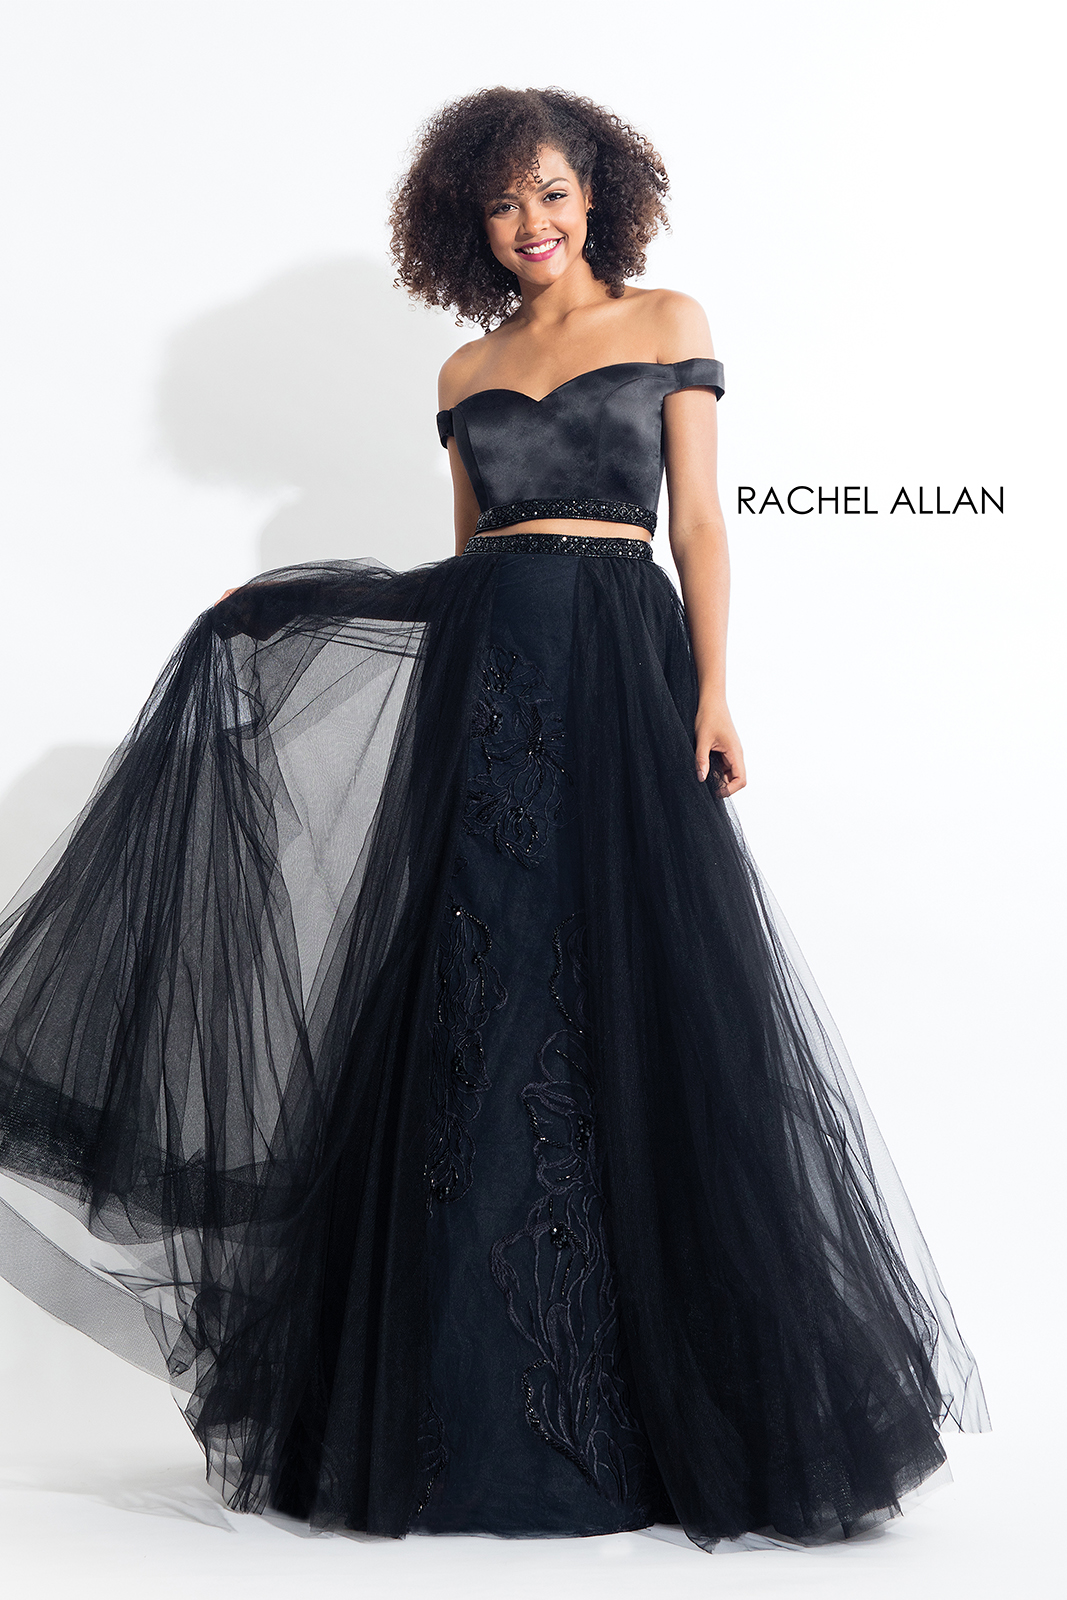 Off The Shoulder Skirt With Overlay Prom Dresses in Black Color